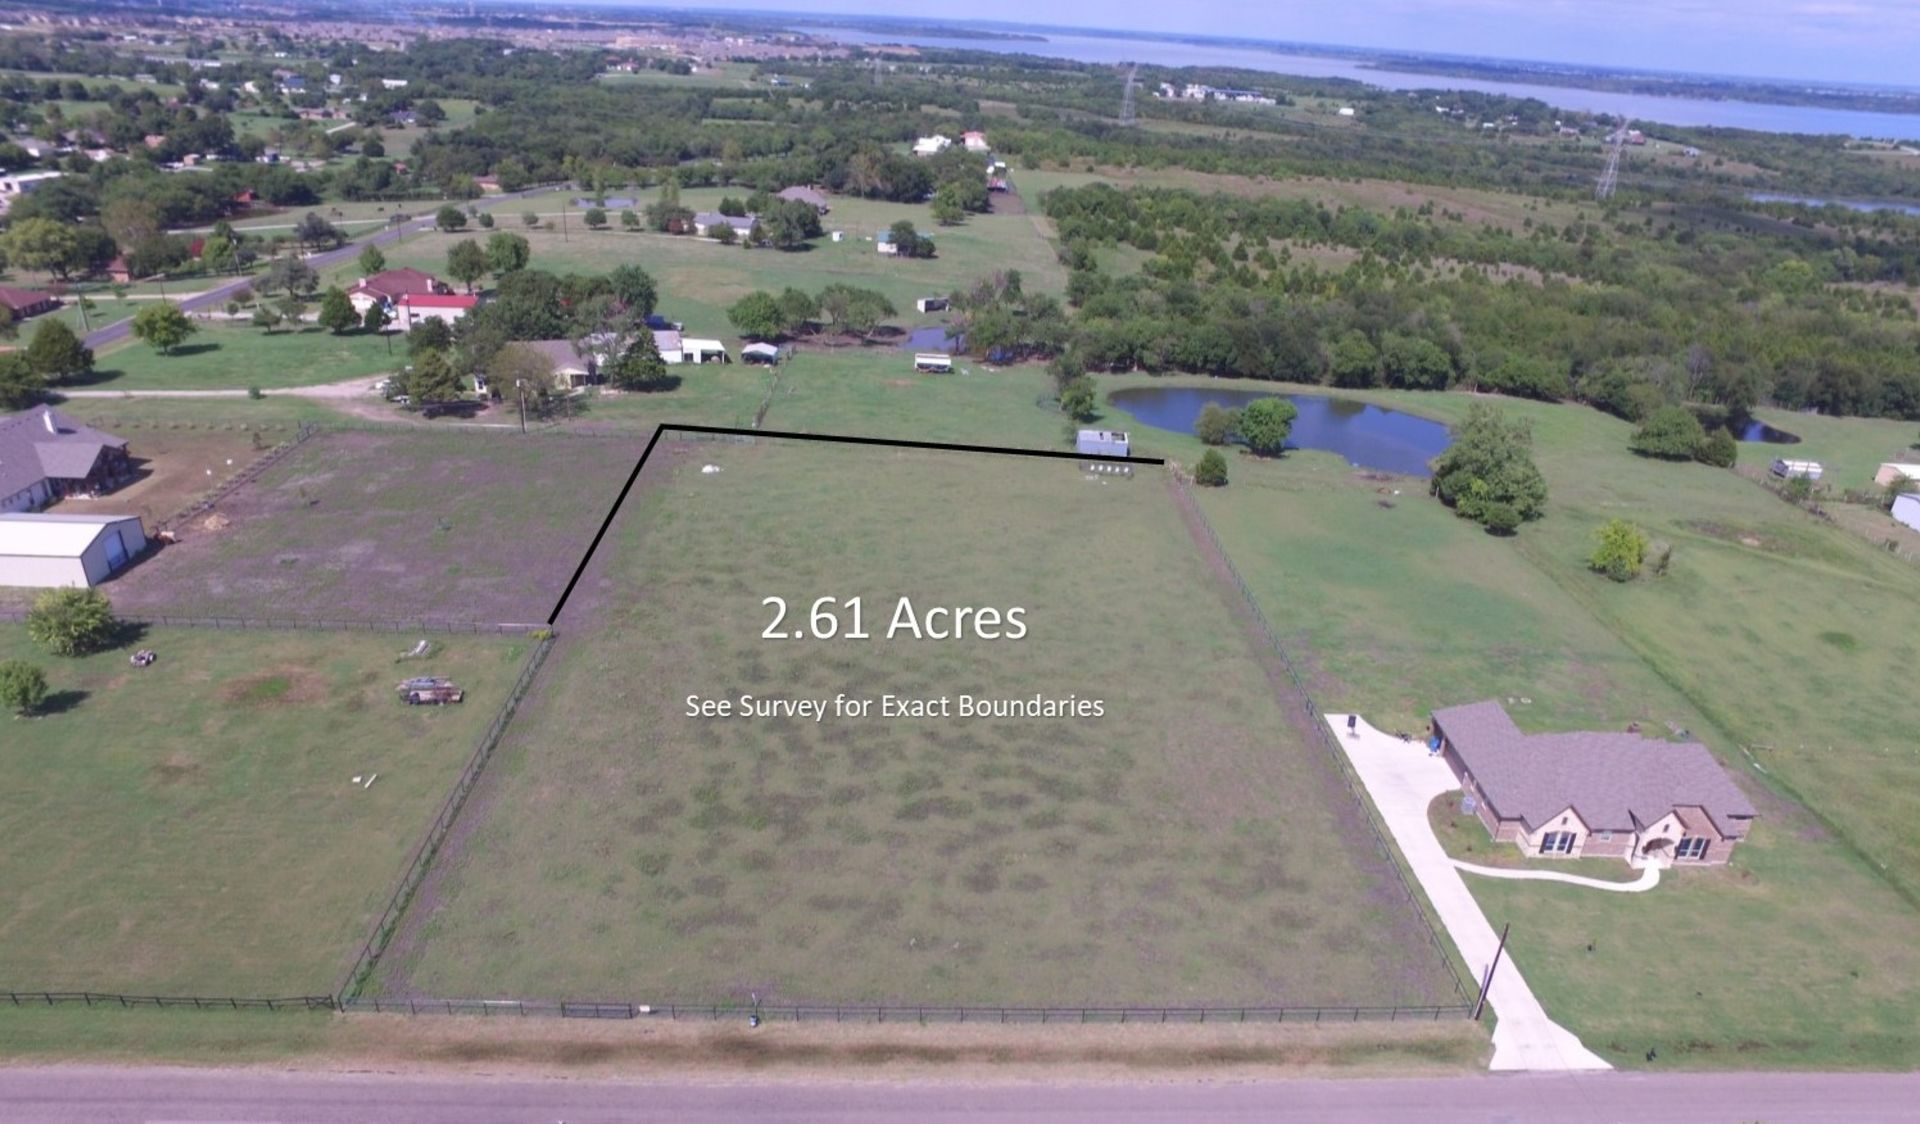 2.61 Acres in St. Paul Texas